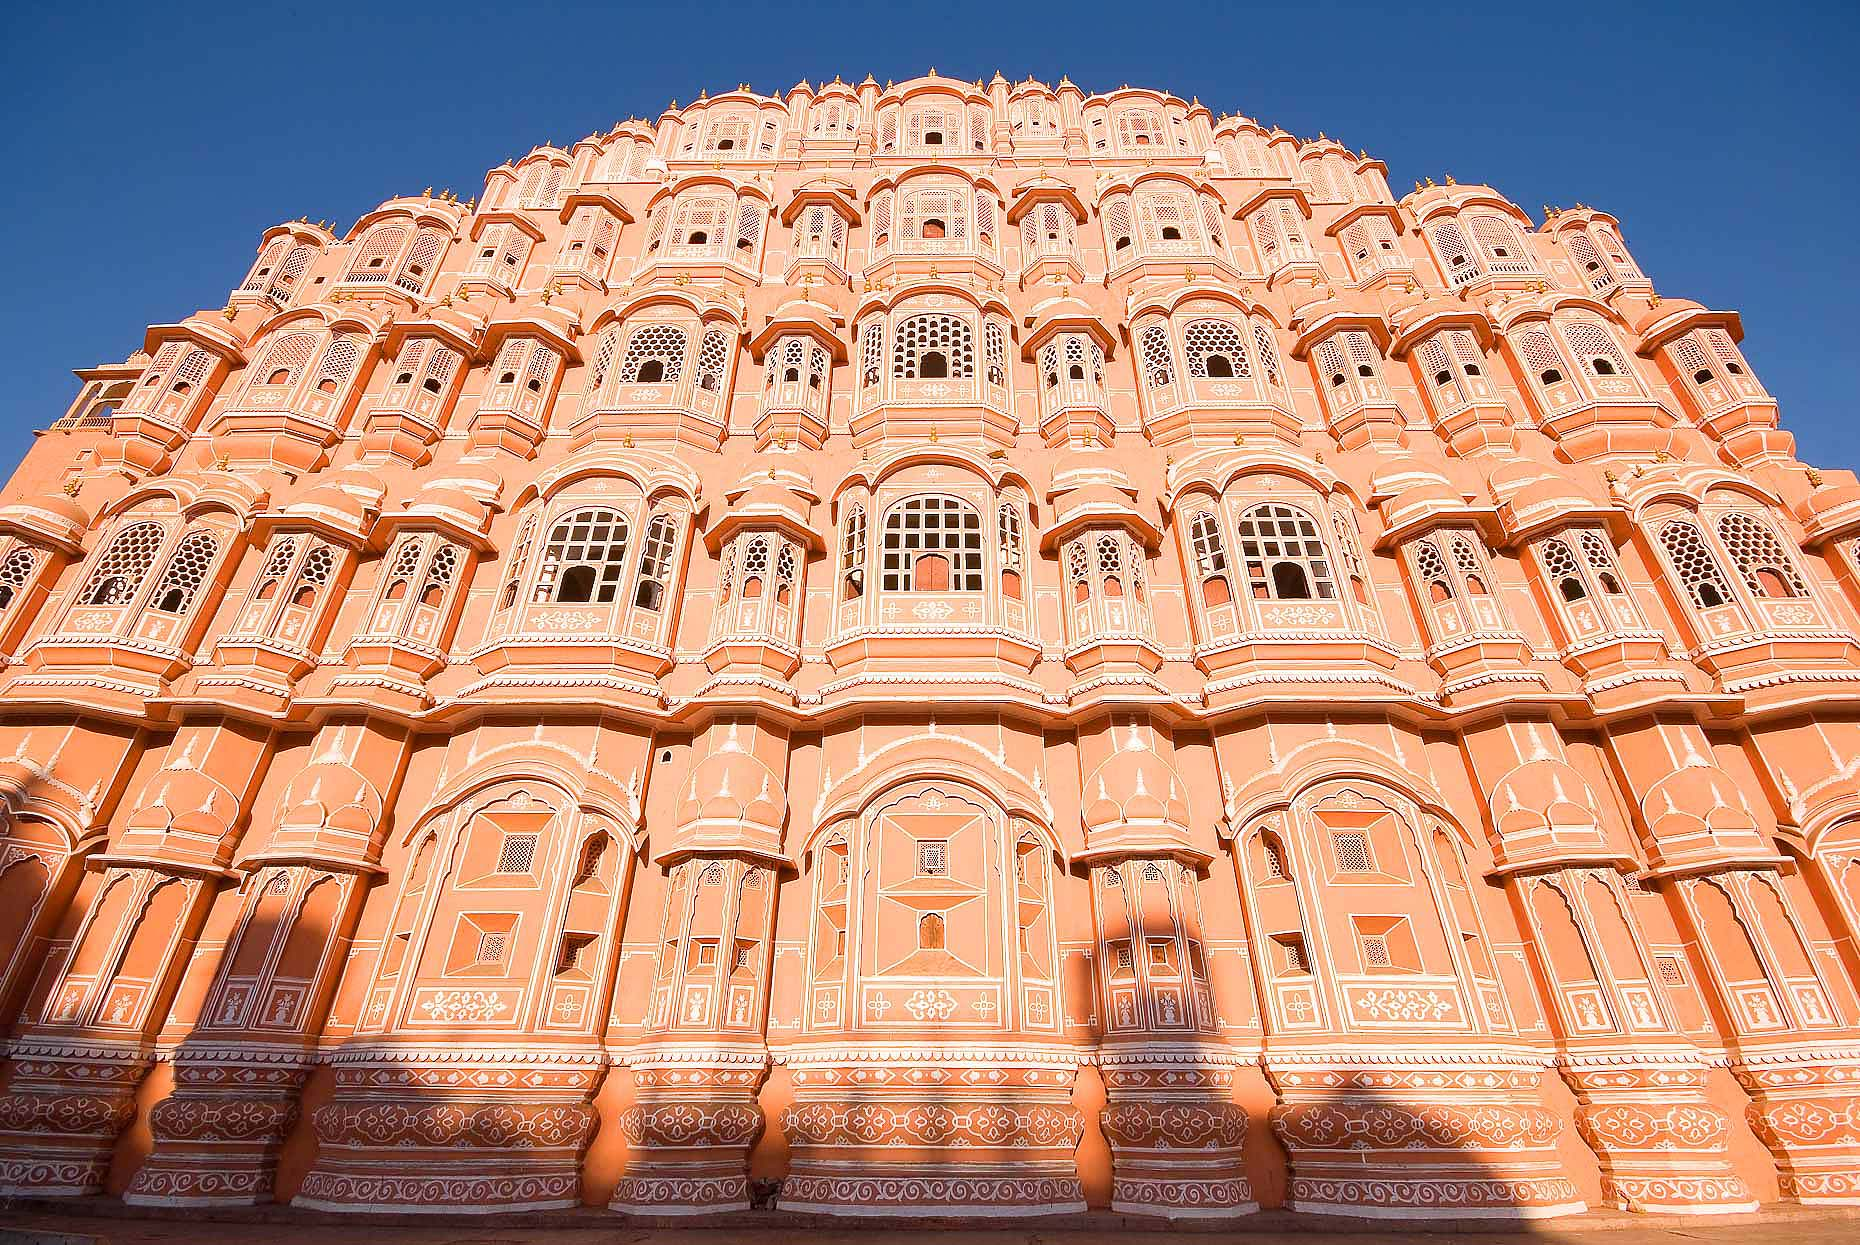 palace-winds-jaipur-rajasthan-india-architecture-exterior-06